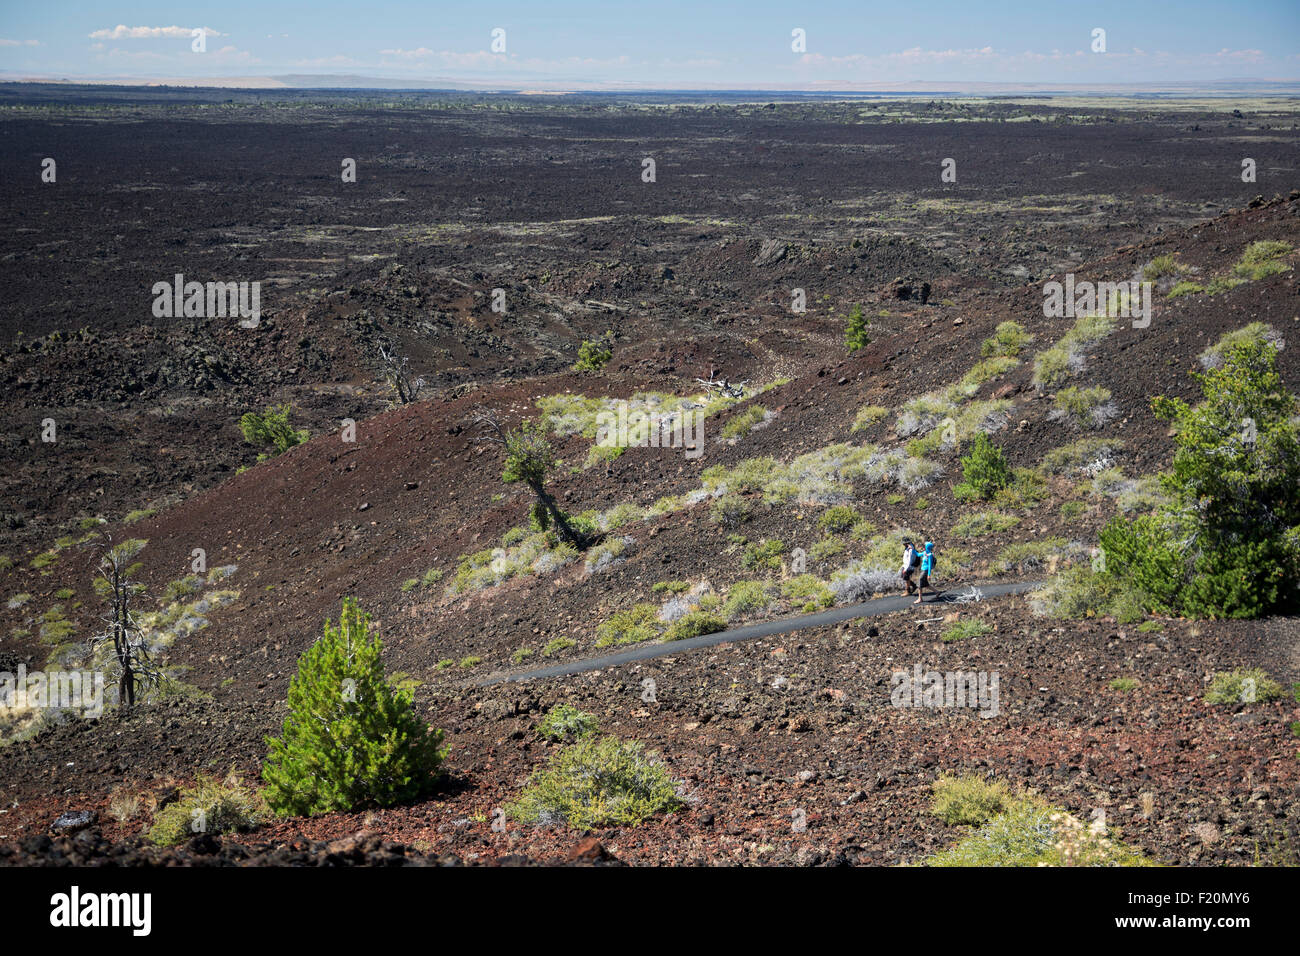 Arco, Idaho - Craters of the Moon National Monument. - Stock Image